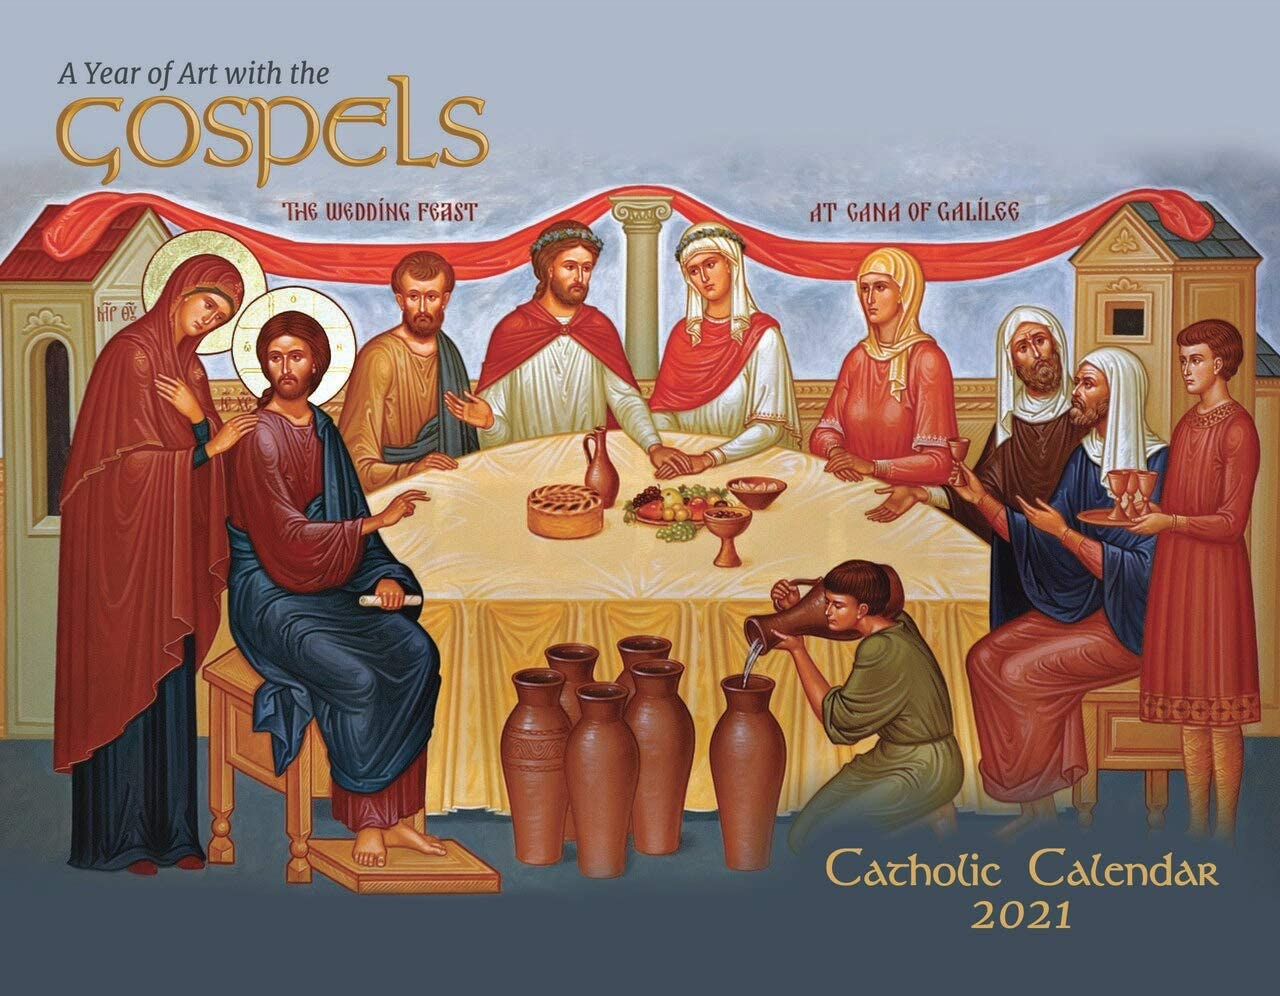 Catholic Religious Liturgical Wall Calendar 2021: A Year of Art with The Gospels Mount Tabor Studios Icons Monthly 11